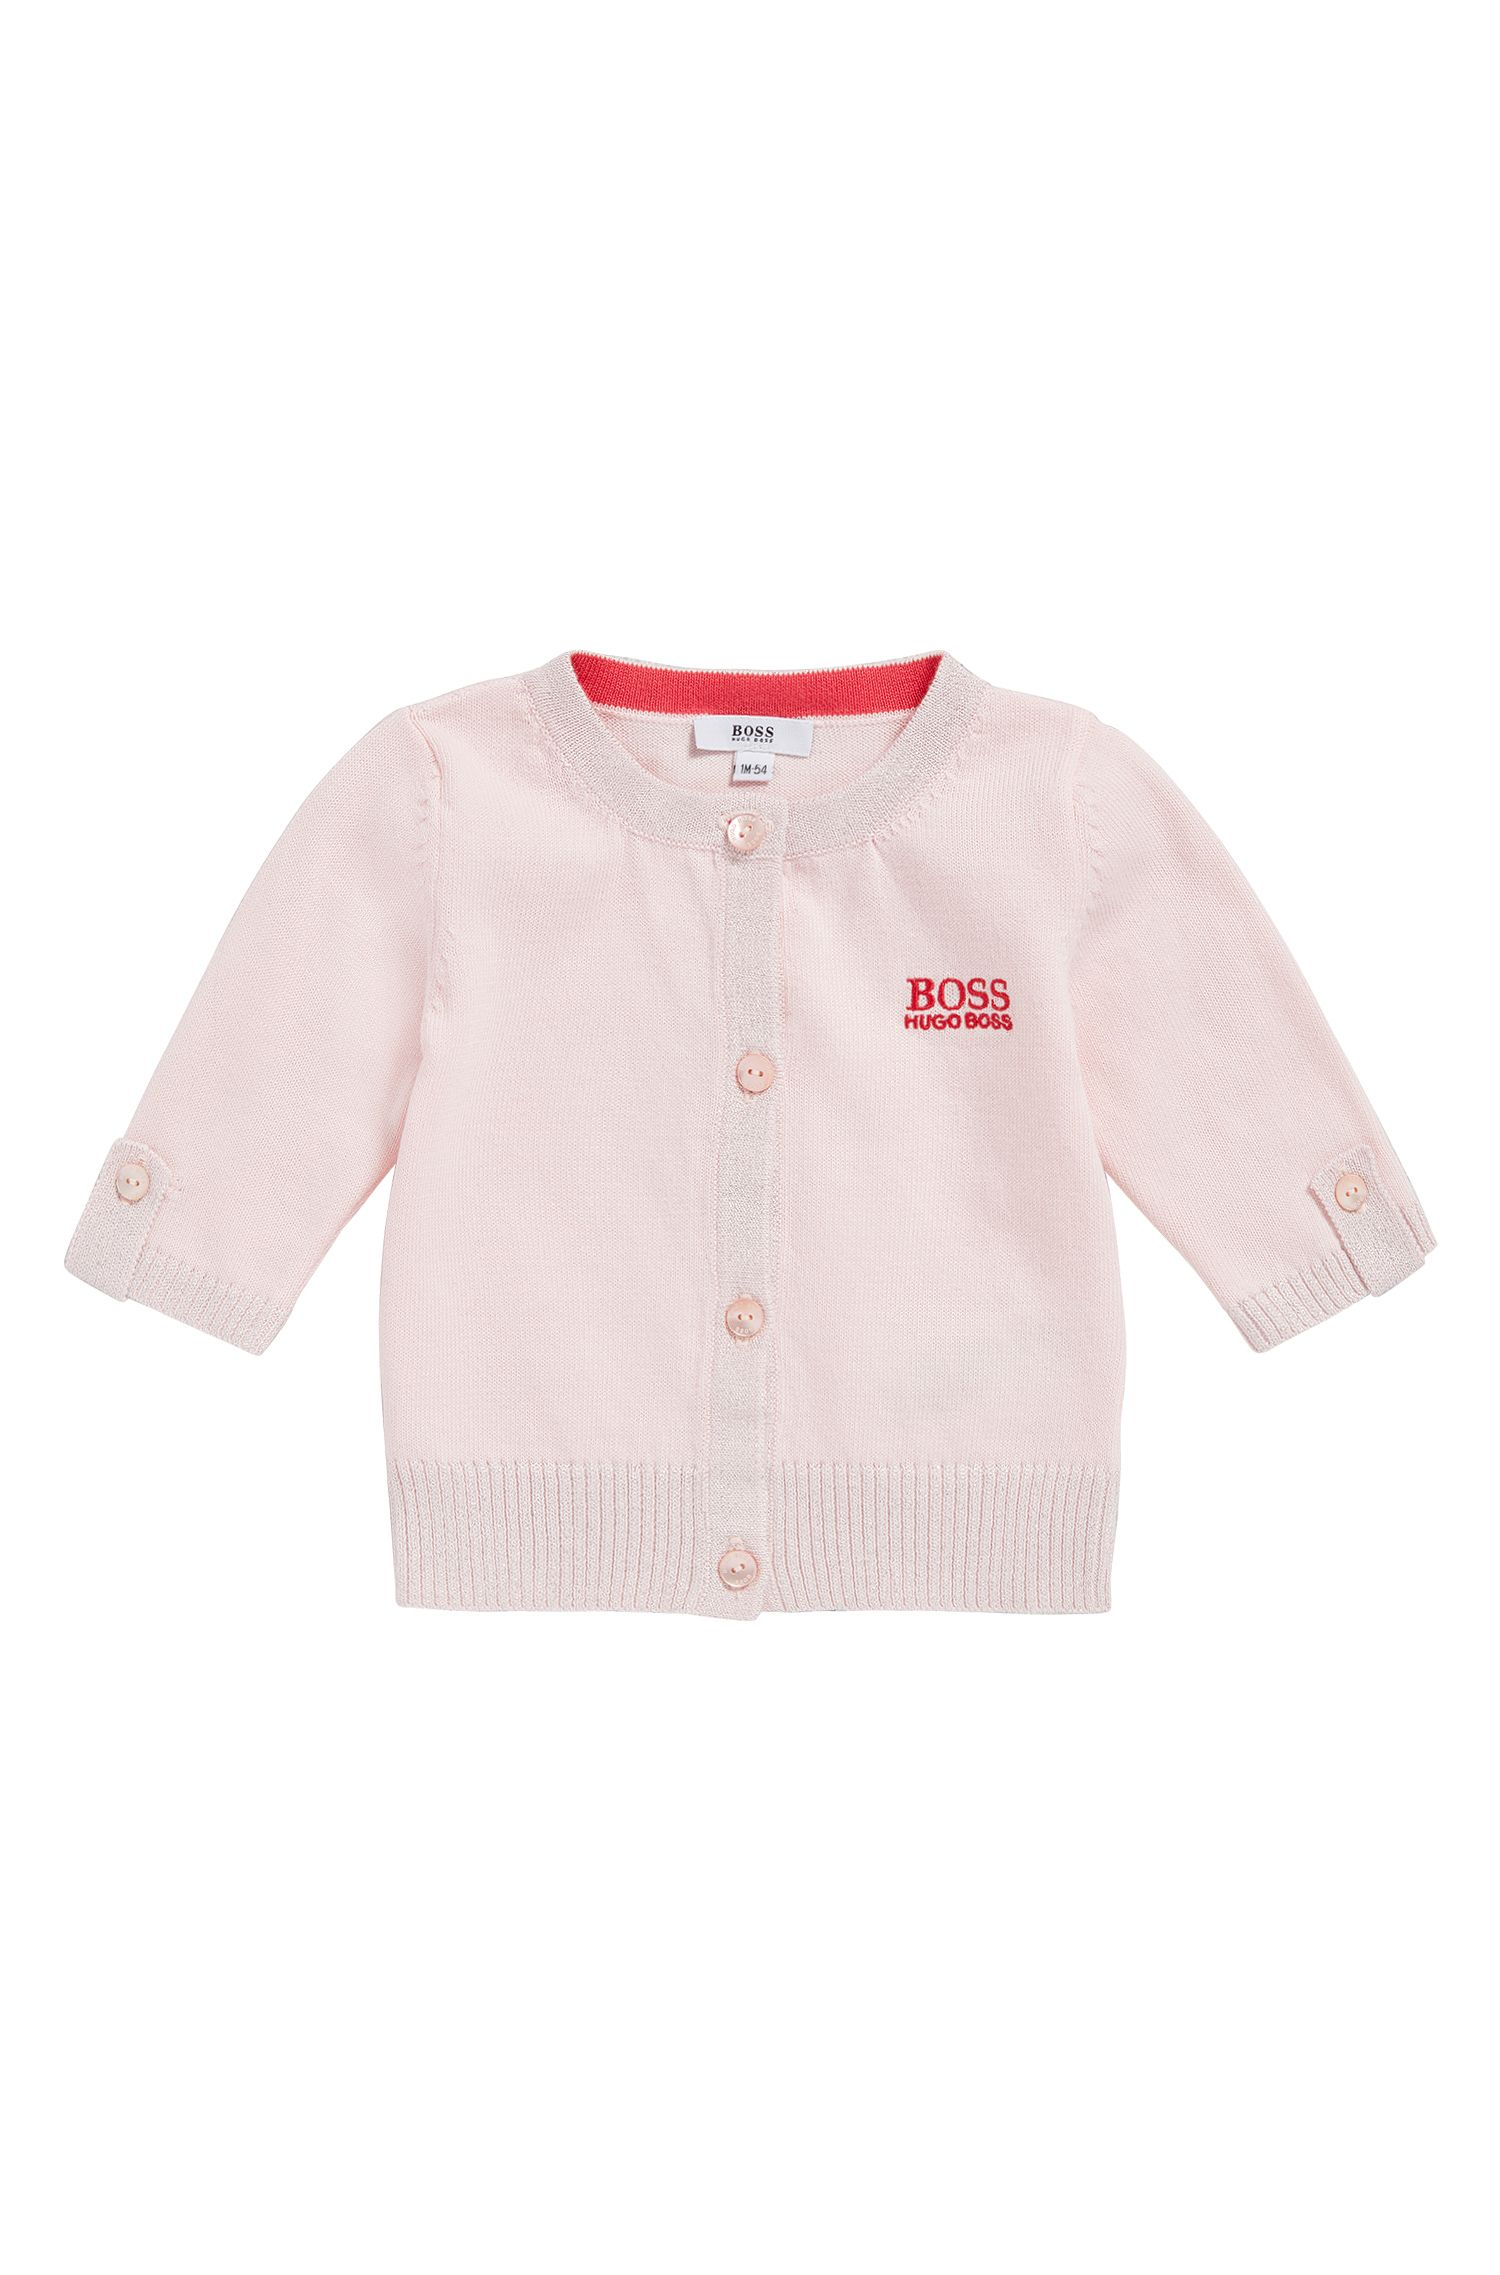 Newborns' cardigan in cotton blend with glittering cuffs: 'J95206'